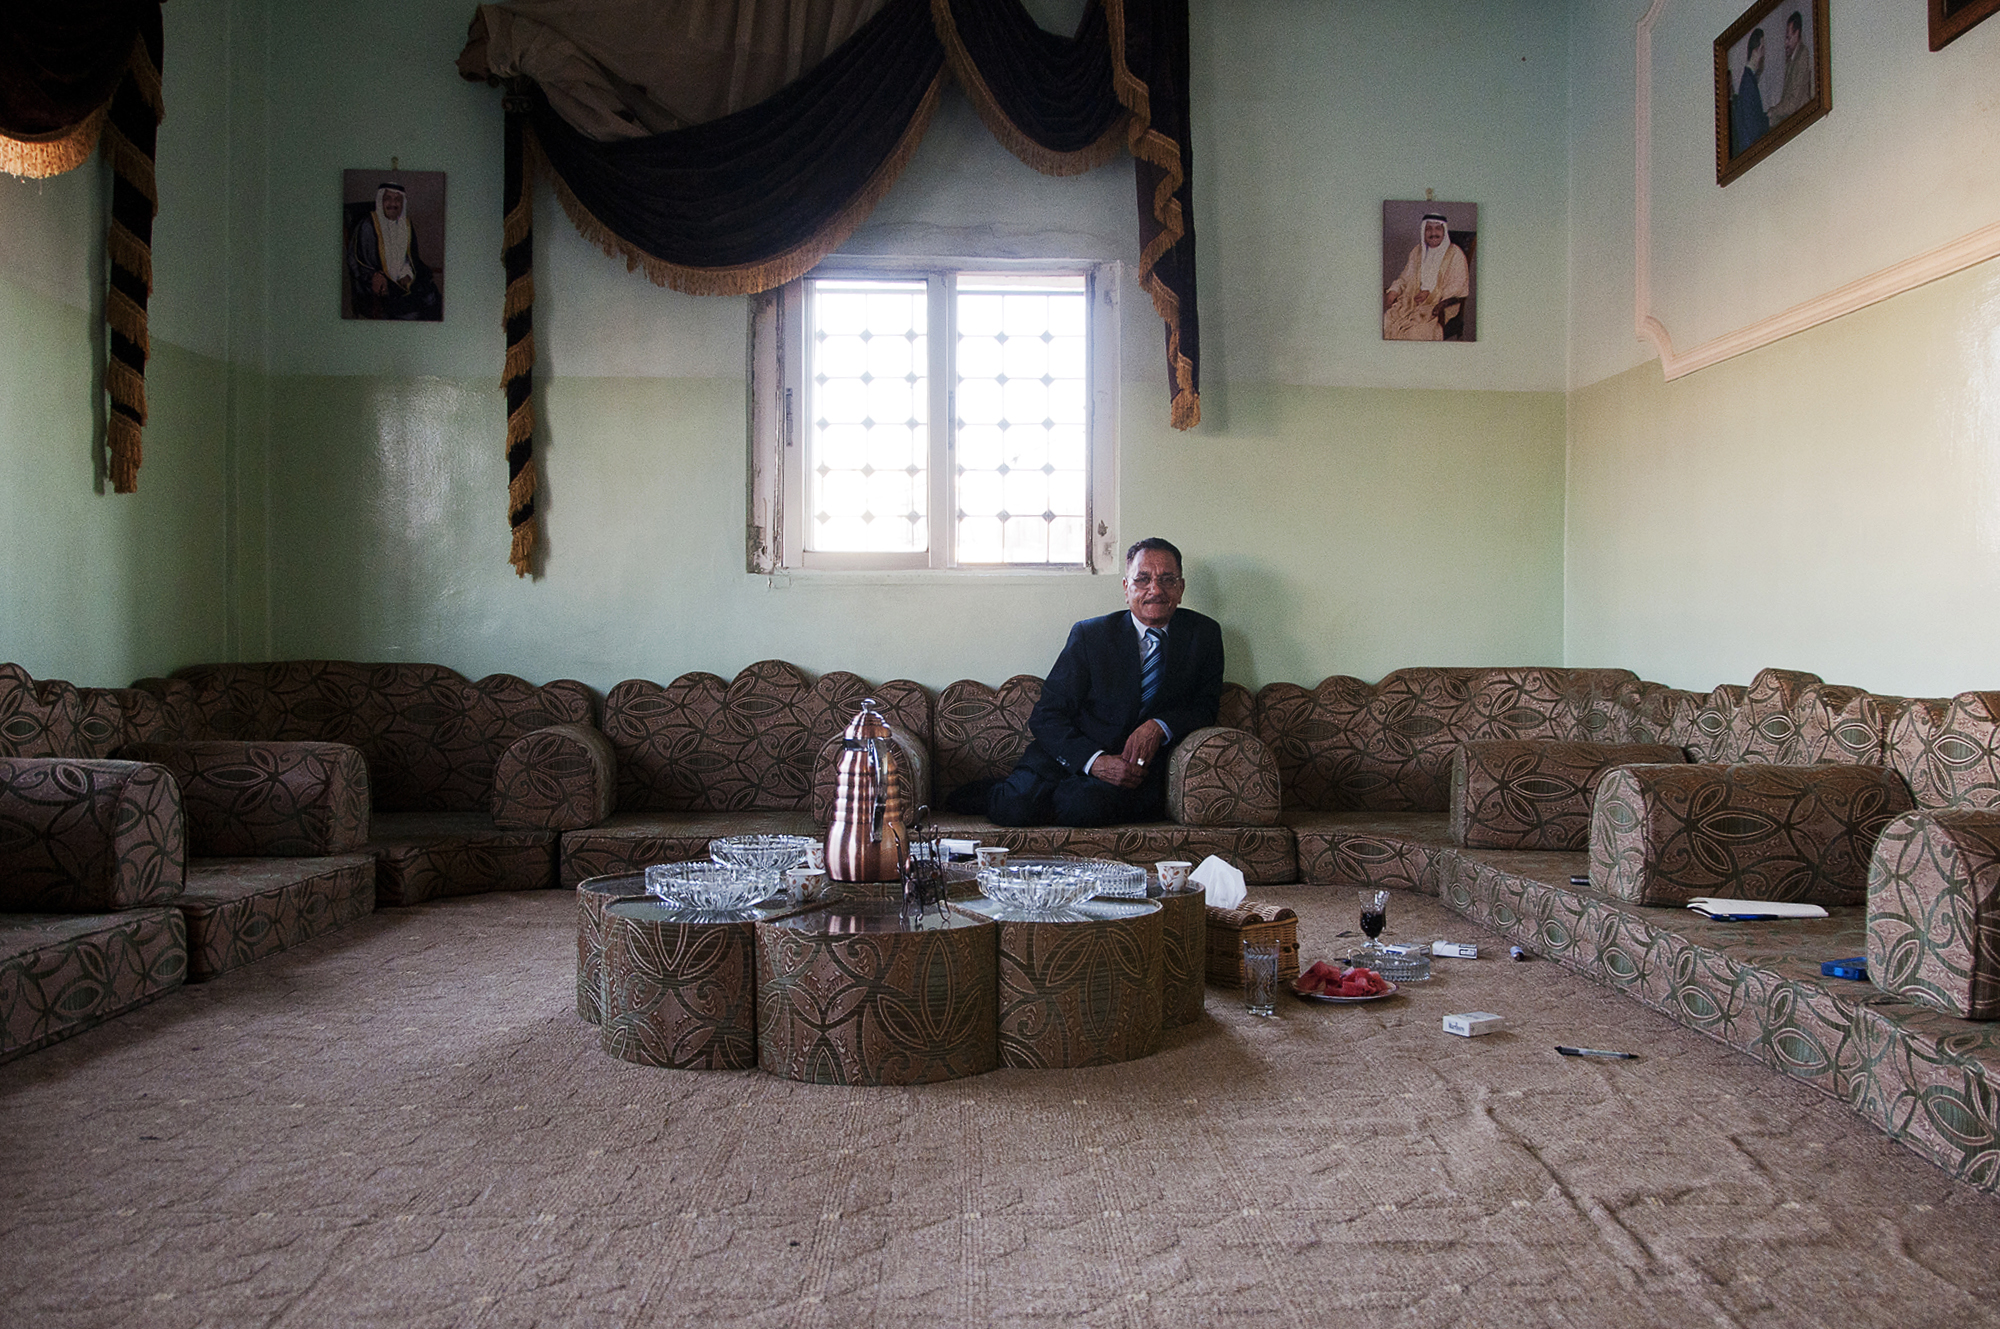 Moussa sits in his living room in east Amman. He is among one of the few educated and financially stable members of Jordan's Bani Murra. His family is widely-respected in the country because of his father's long musical career as a lute player. Musical performance is among the tribe's most well-known historical attributes, but Moussa's father was the last tribes-person to become nationally recognized. July 2013.